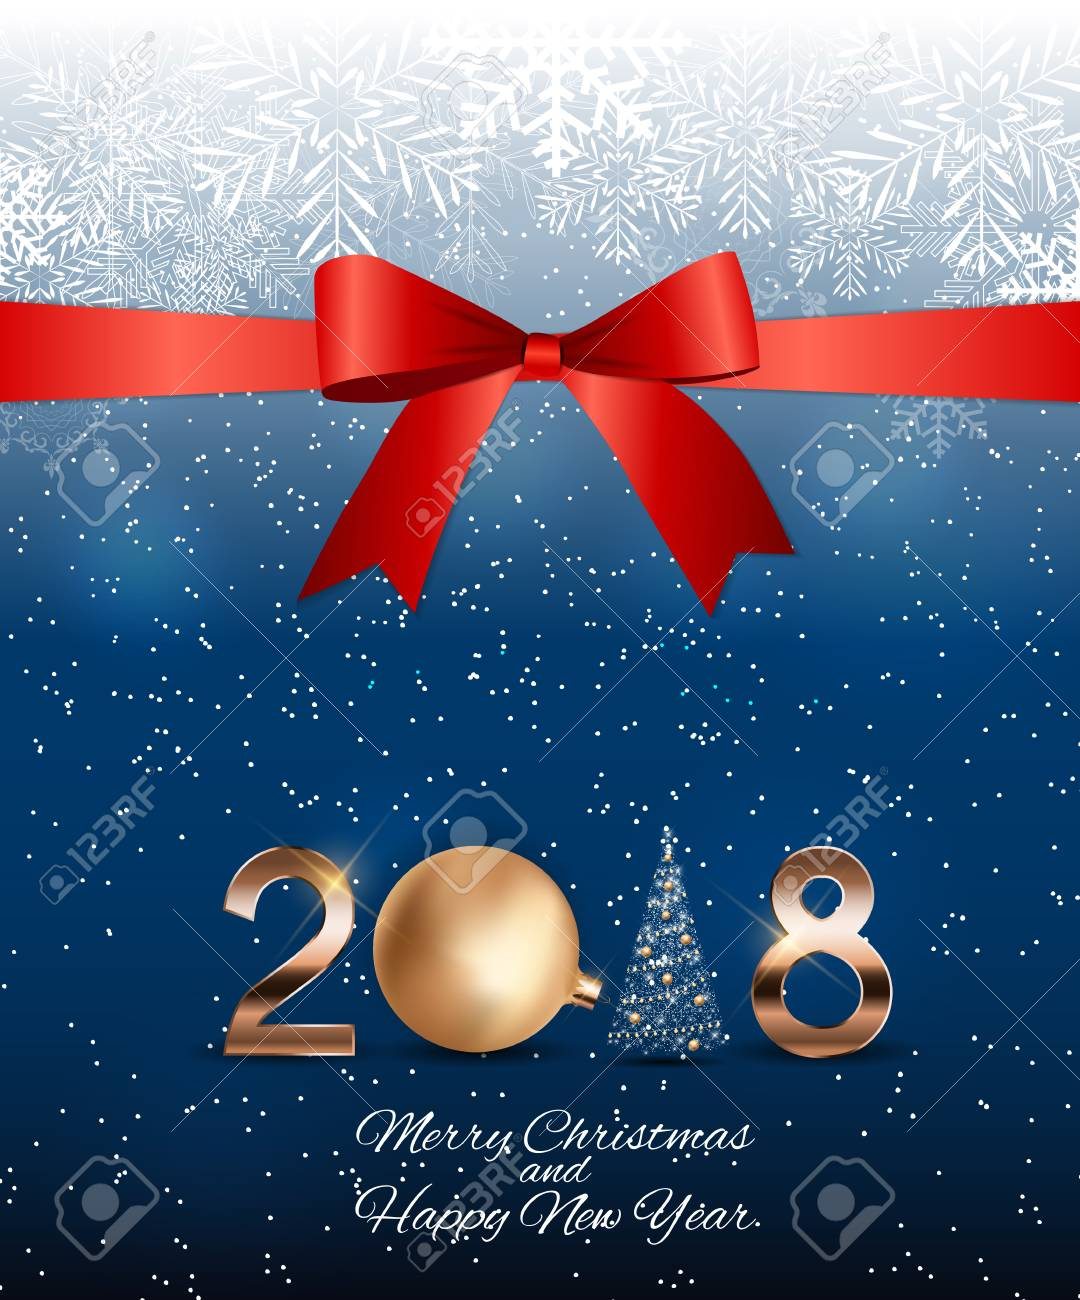 2018 new year background with christmas ball vector illustration stock illustration 89373521